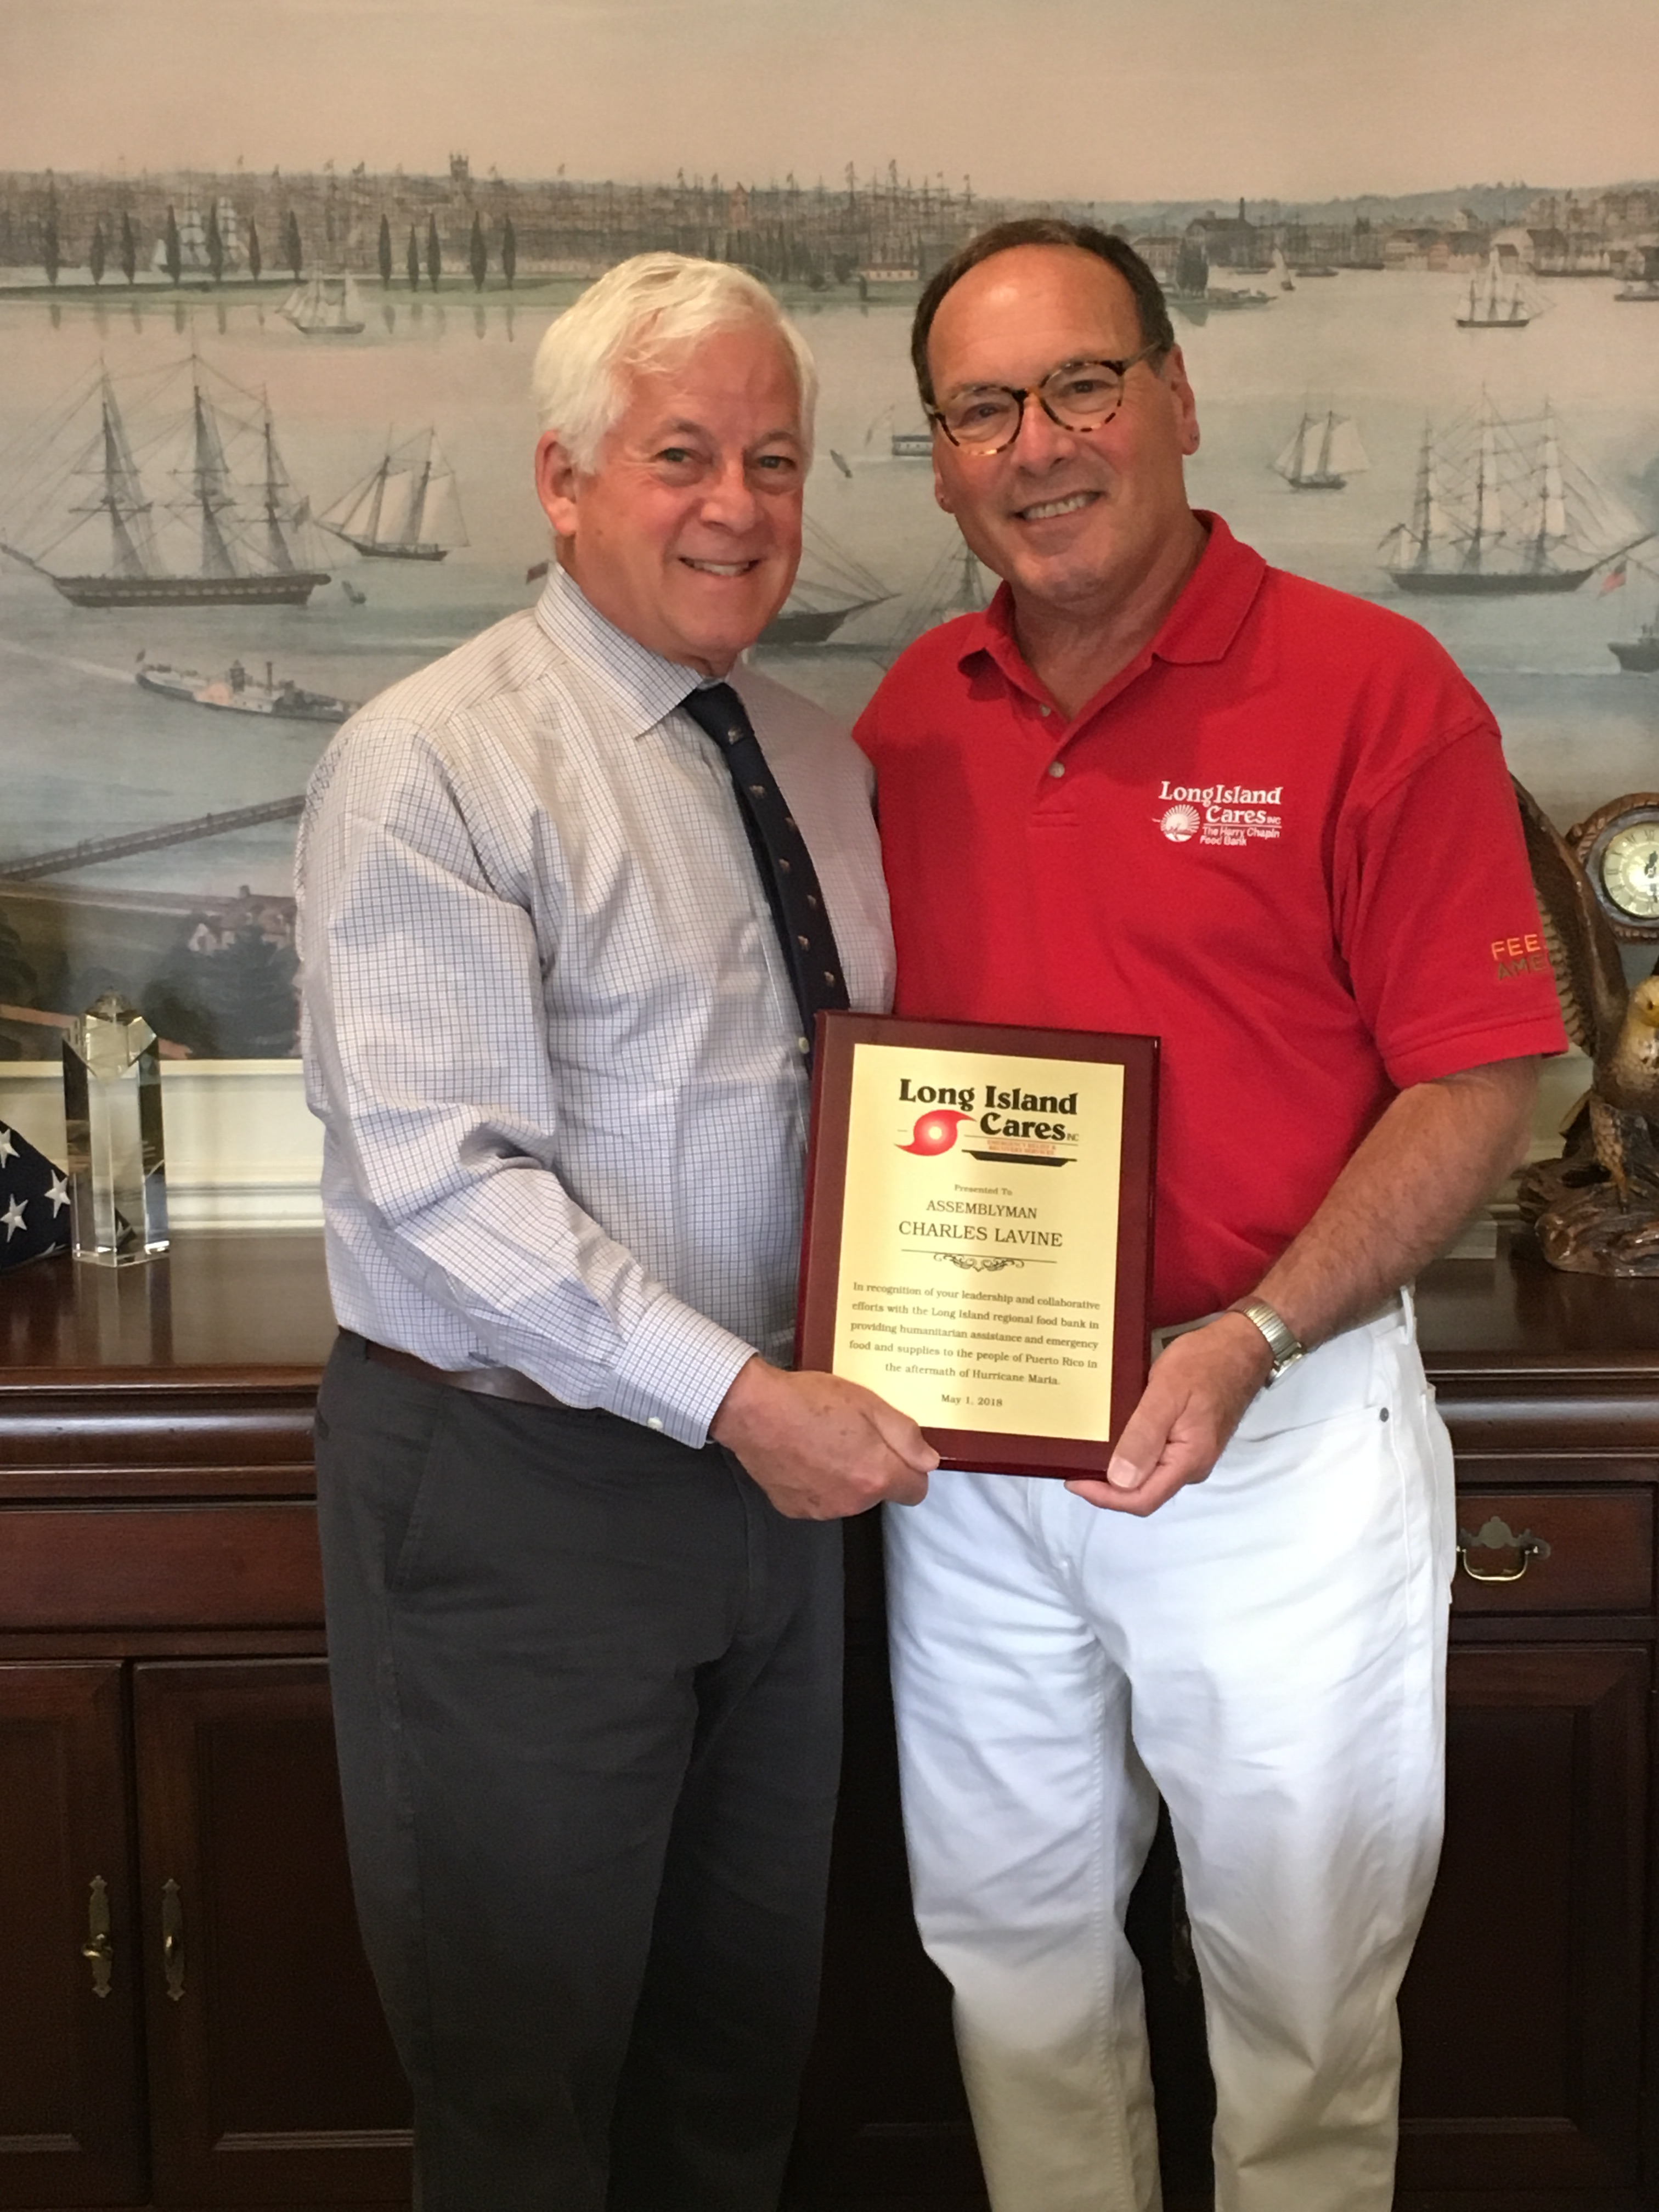 Paul Pachter, CEO of Long Island Cares presenting the plaque to Assemblymember Lavine<br />&nbsp;